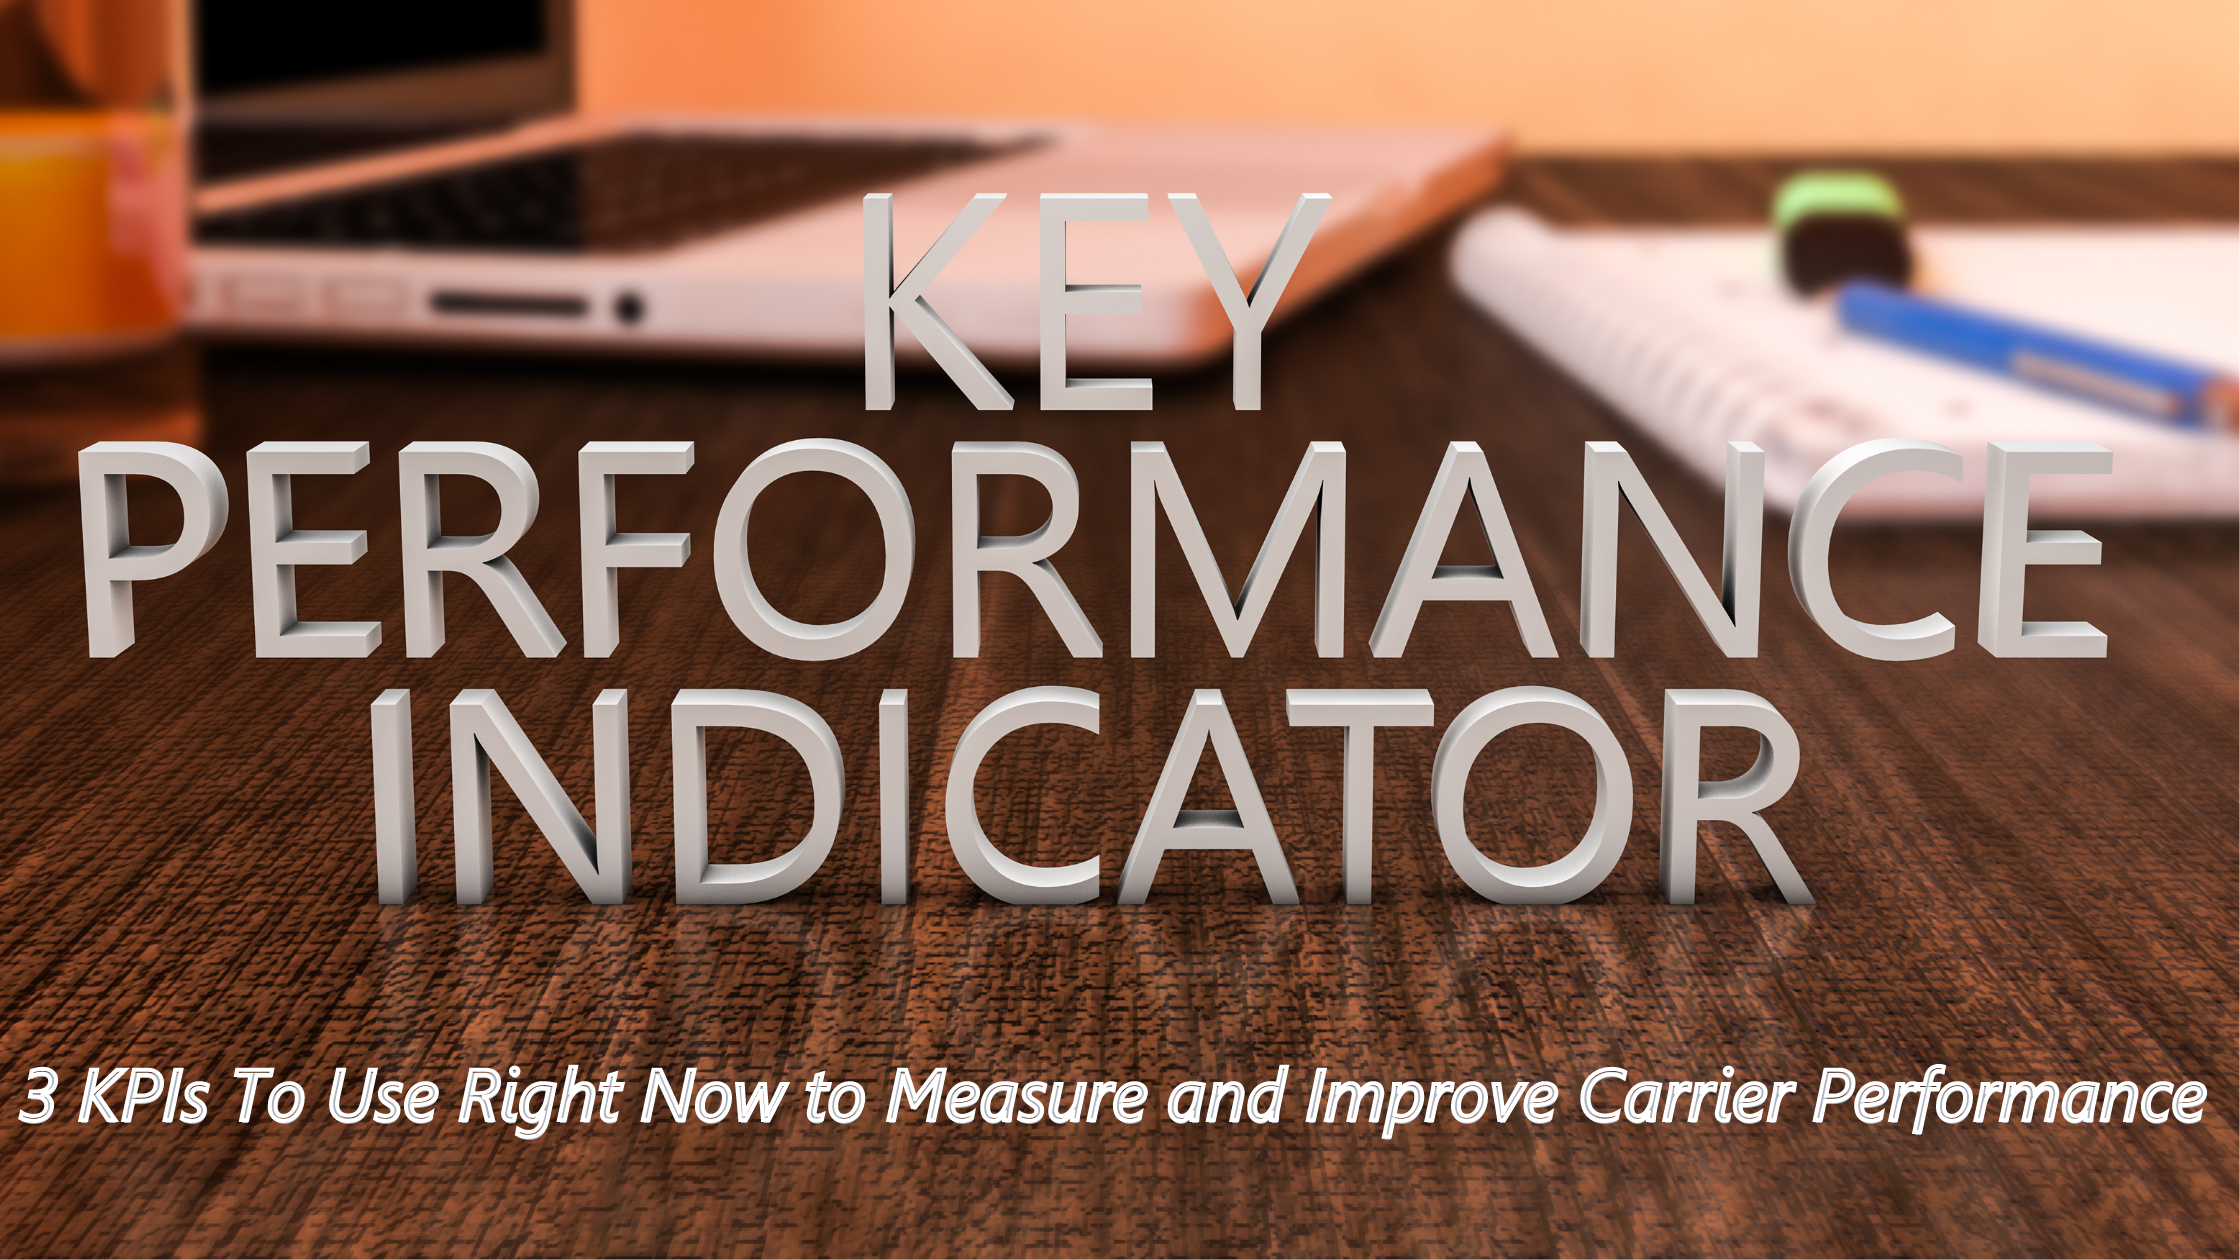 Key-performance-indicators-to -use-right-now-to-measure-and-improve-carrier-performance-on-top-of-desk-with-note-pad-pen-digital-tablet